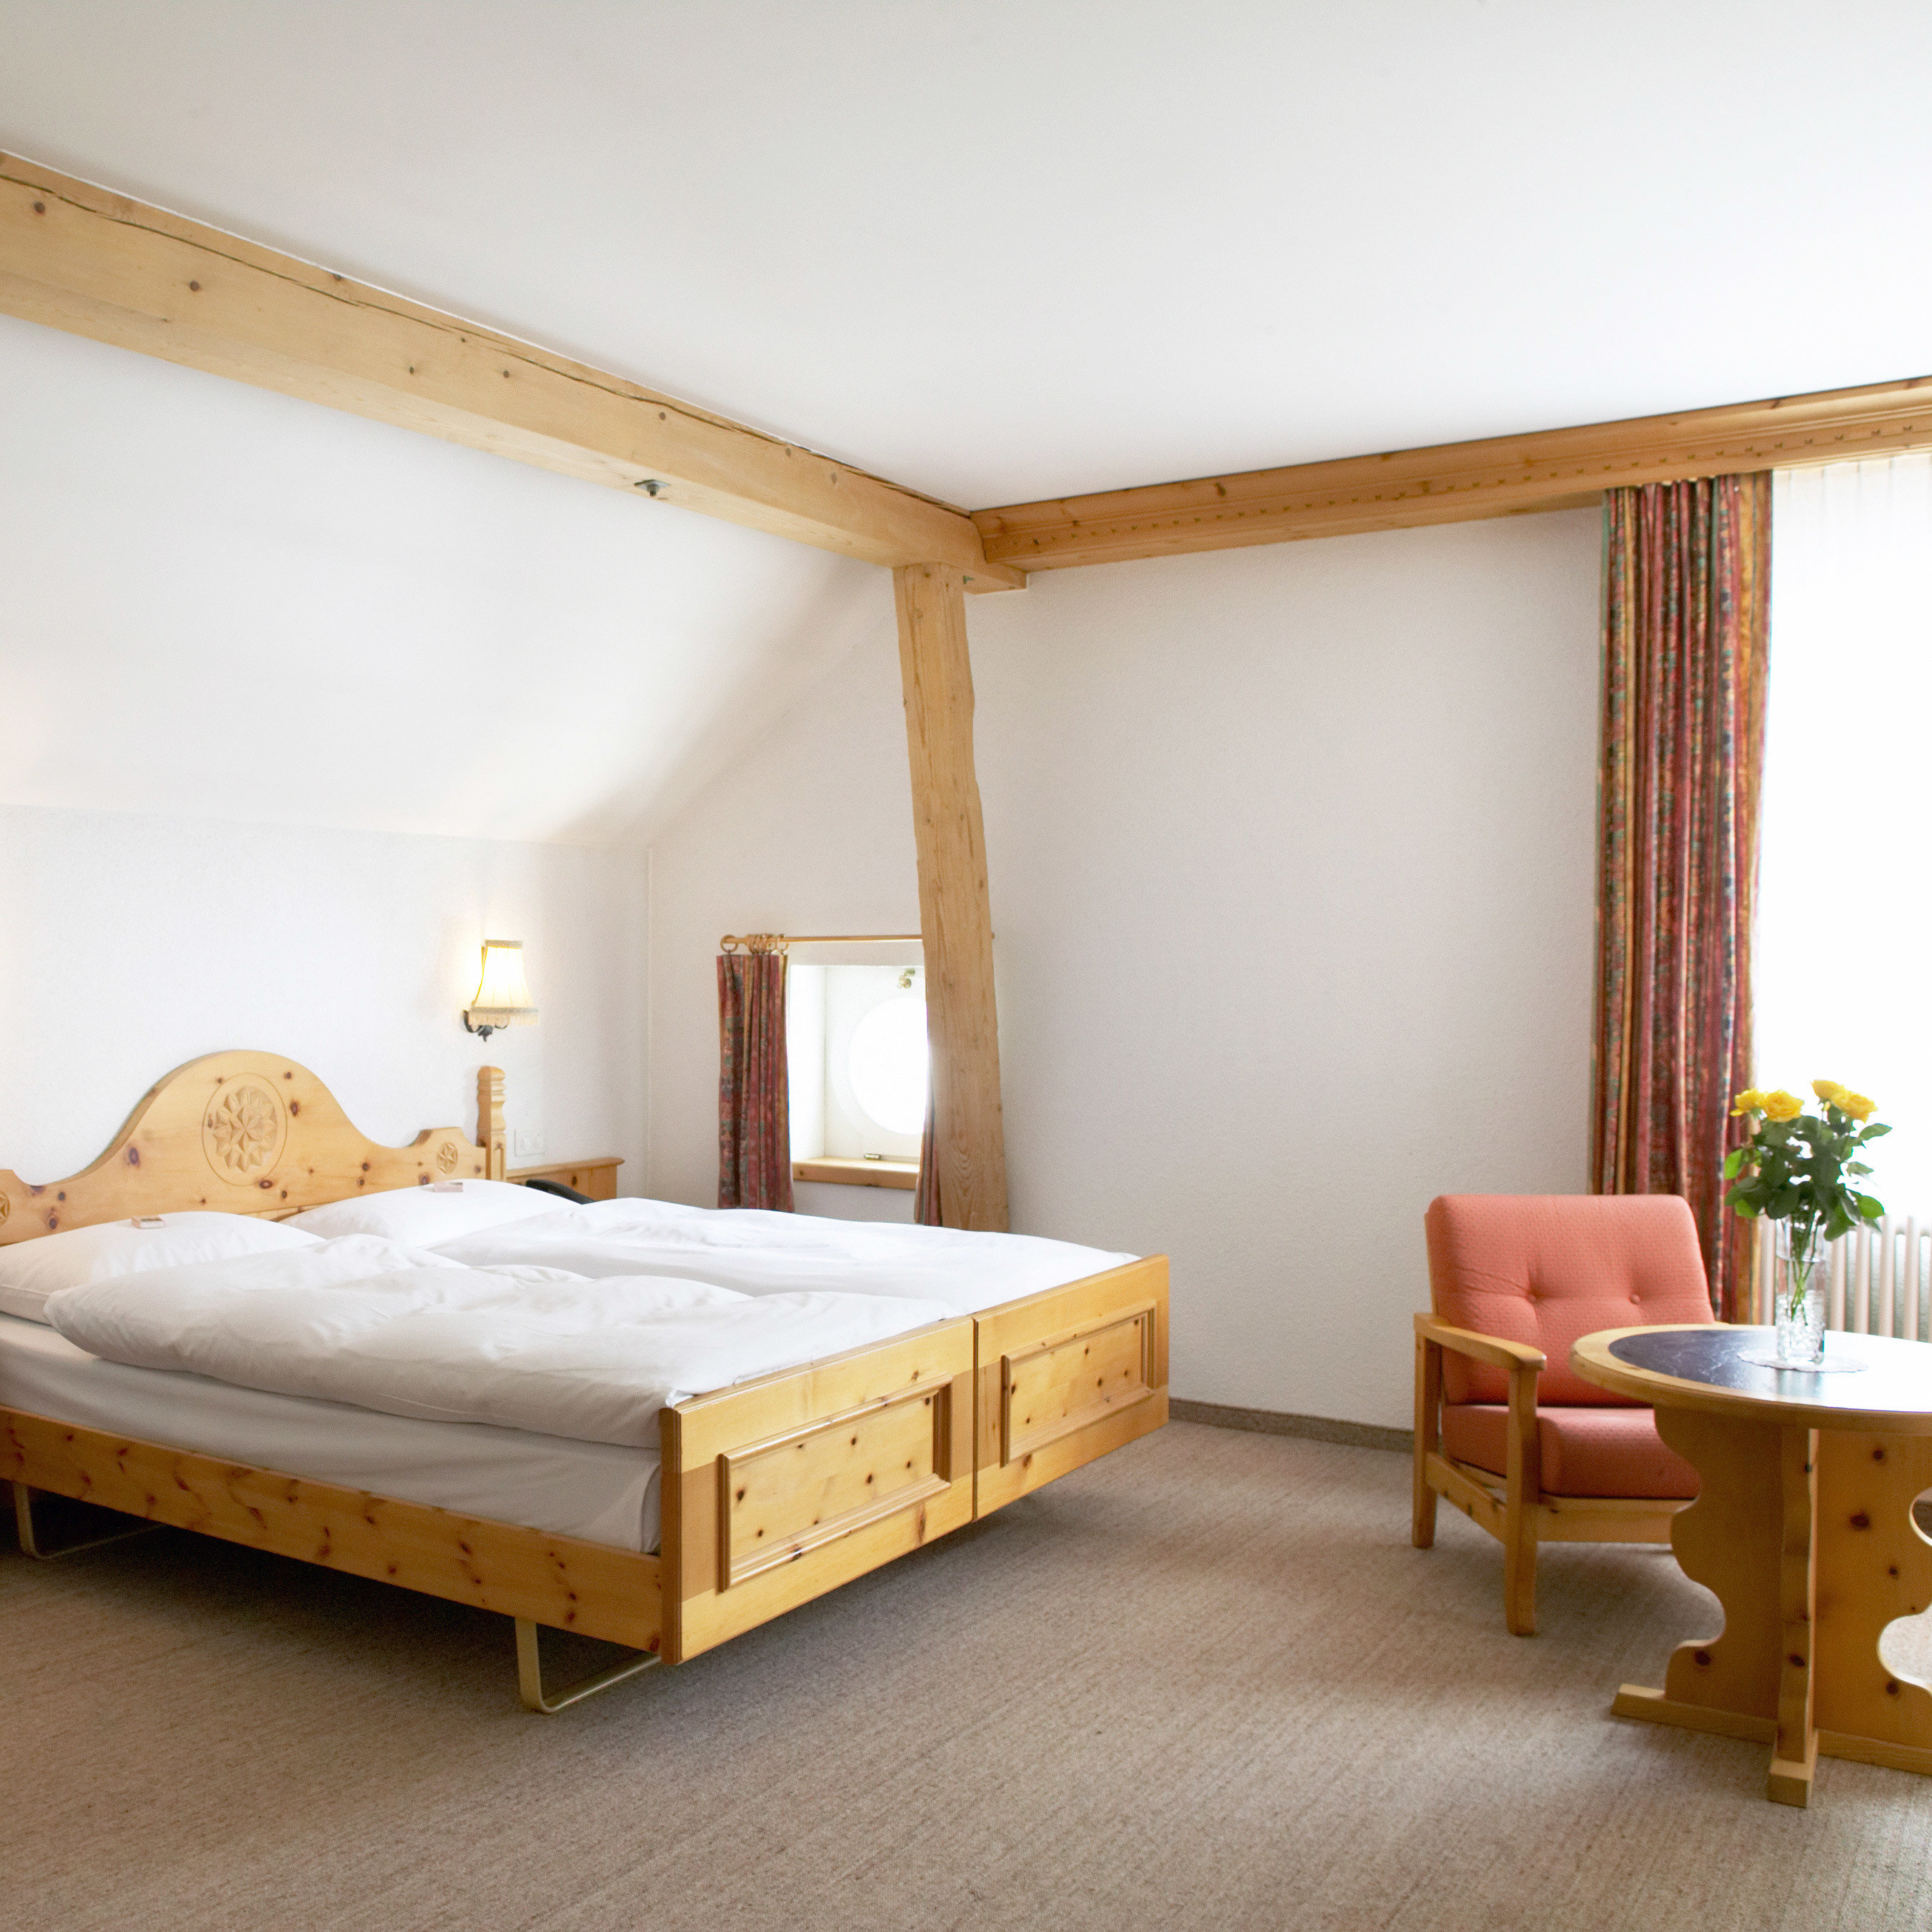 Bedroom Forest Mountains Nature property living room hardwood bed frame Suite studio couch cottage